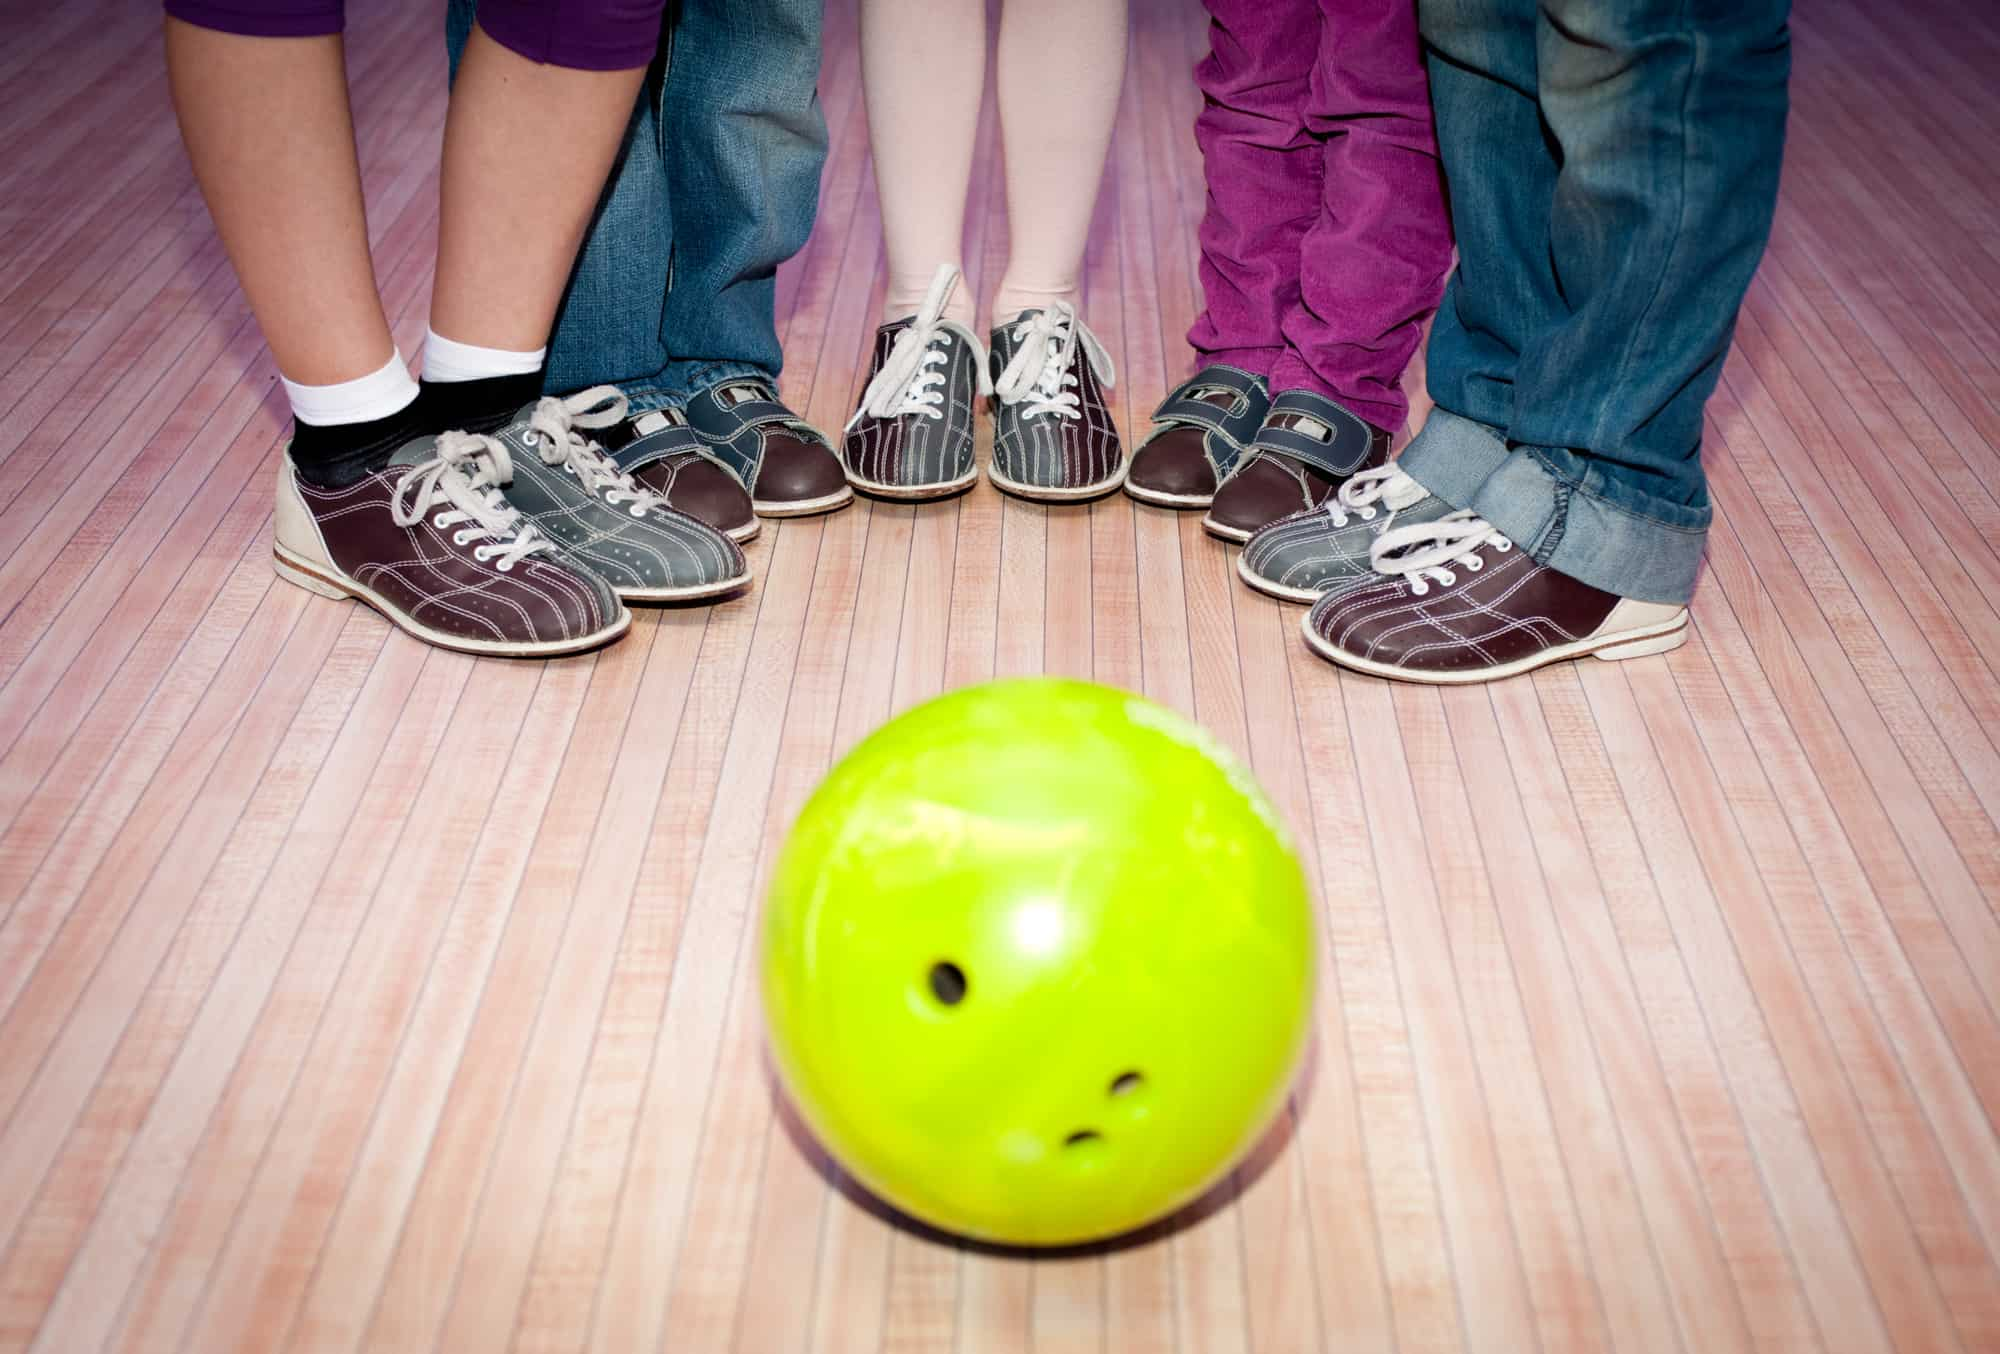 Five different sets of feet representing a family standing around a bowling ball.